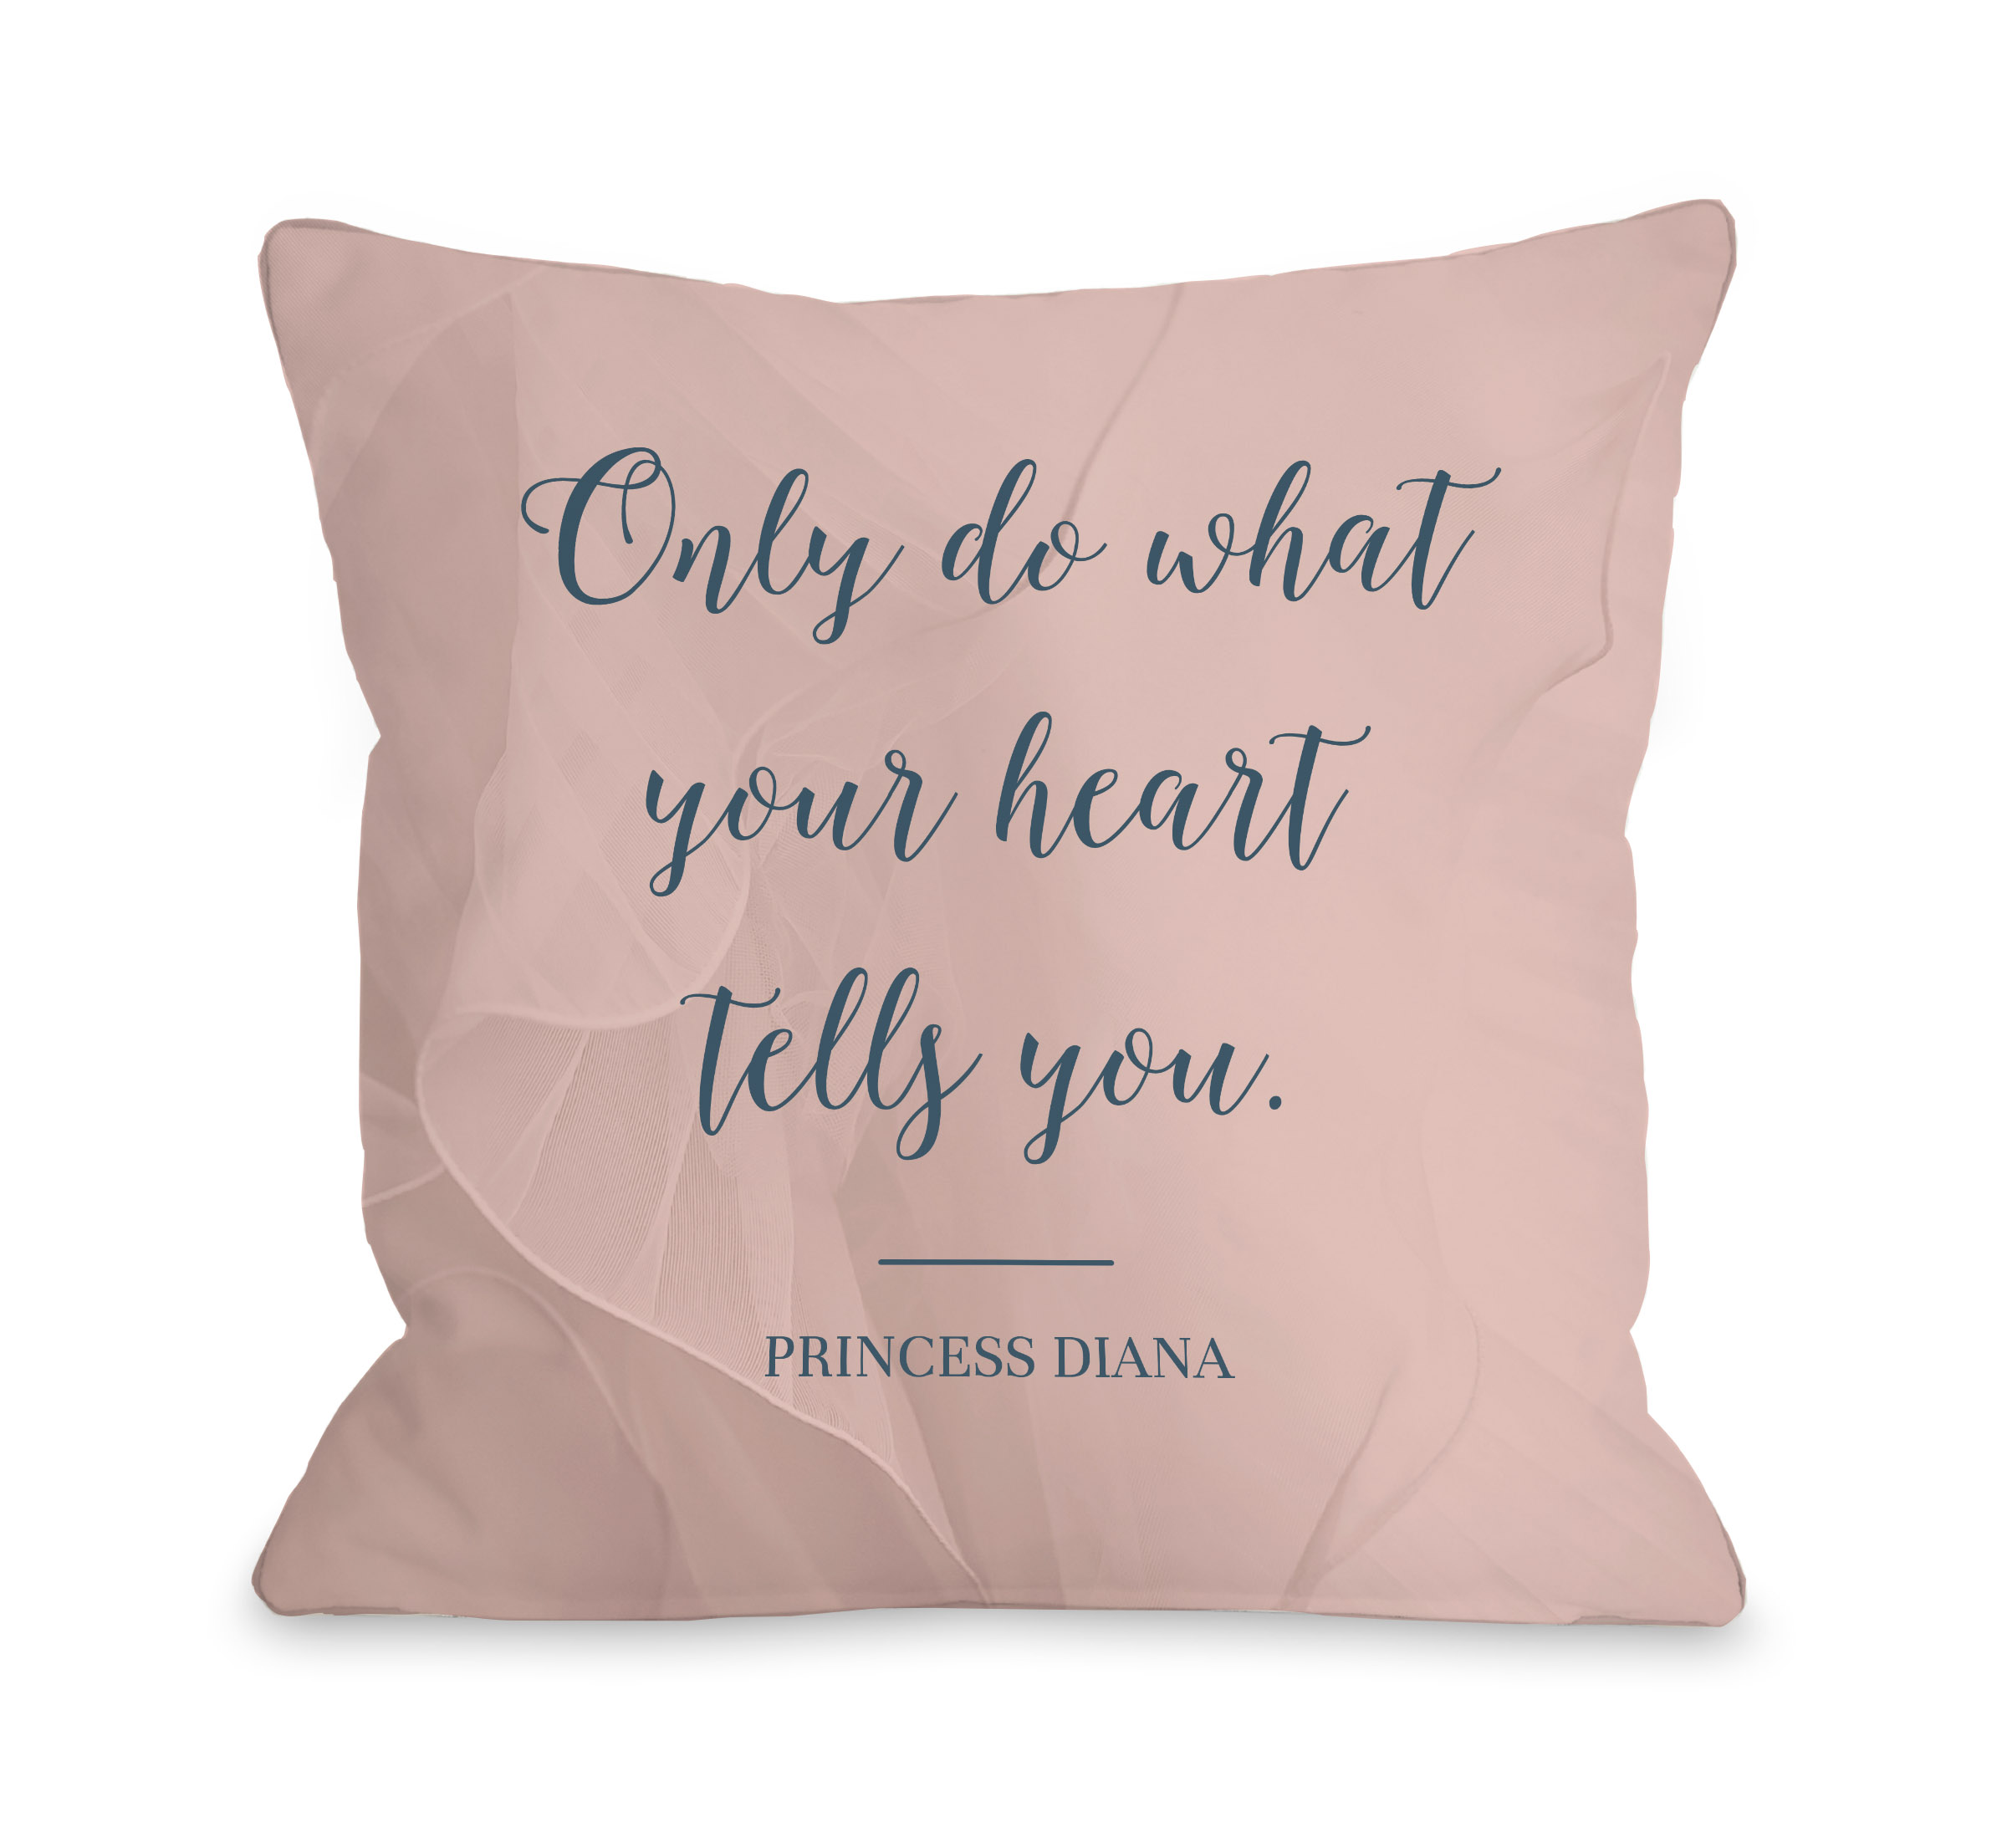 What Your Heart Tells You - Blush Navy 18x18 Pillow by OBC